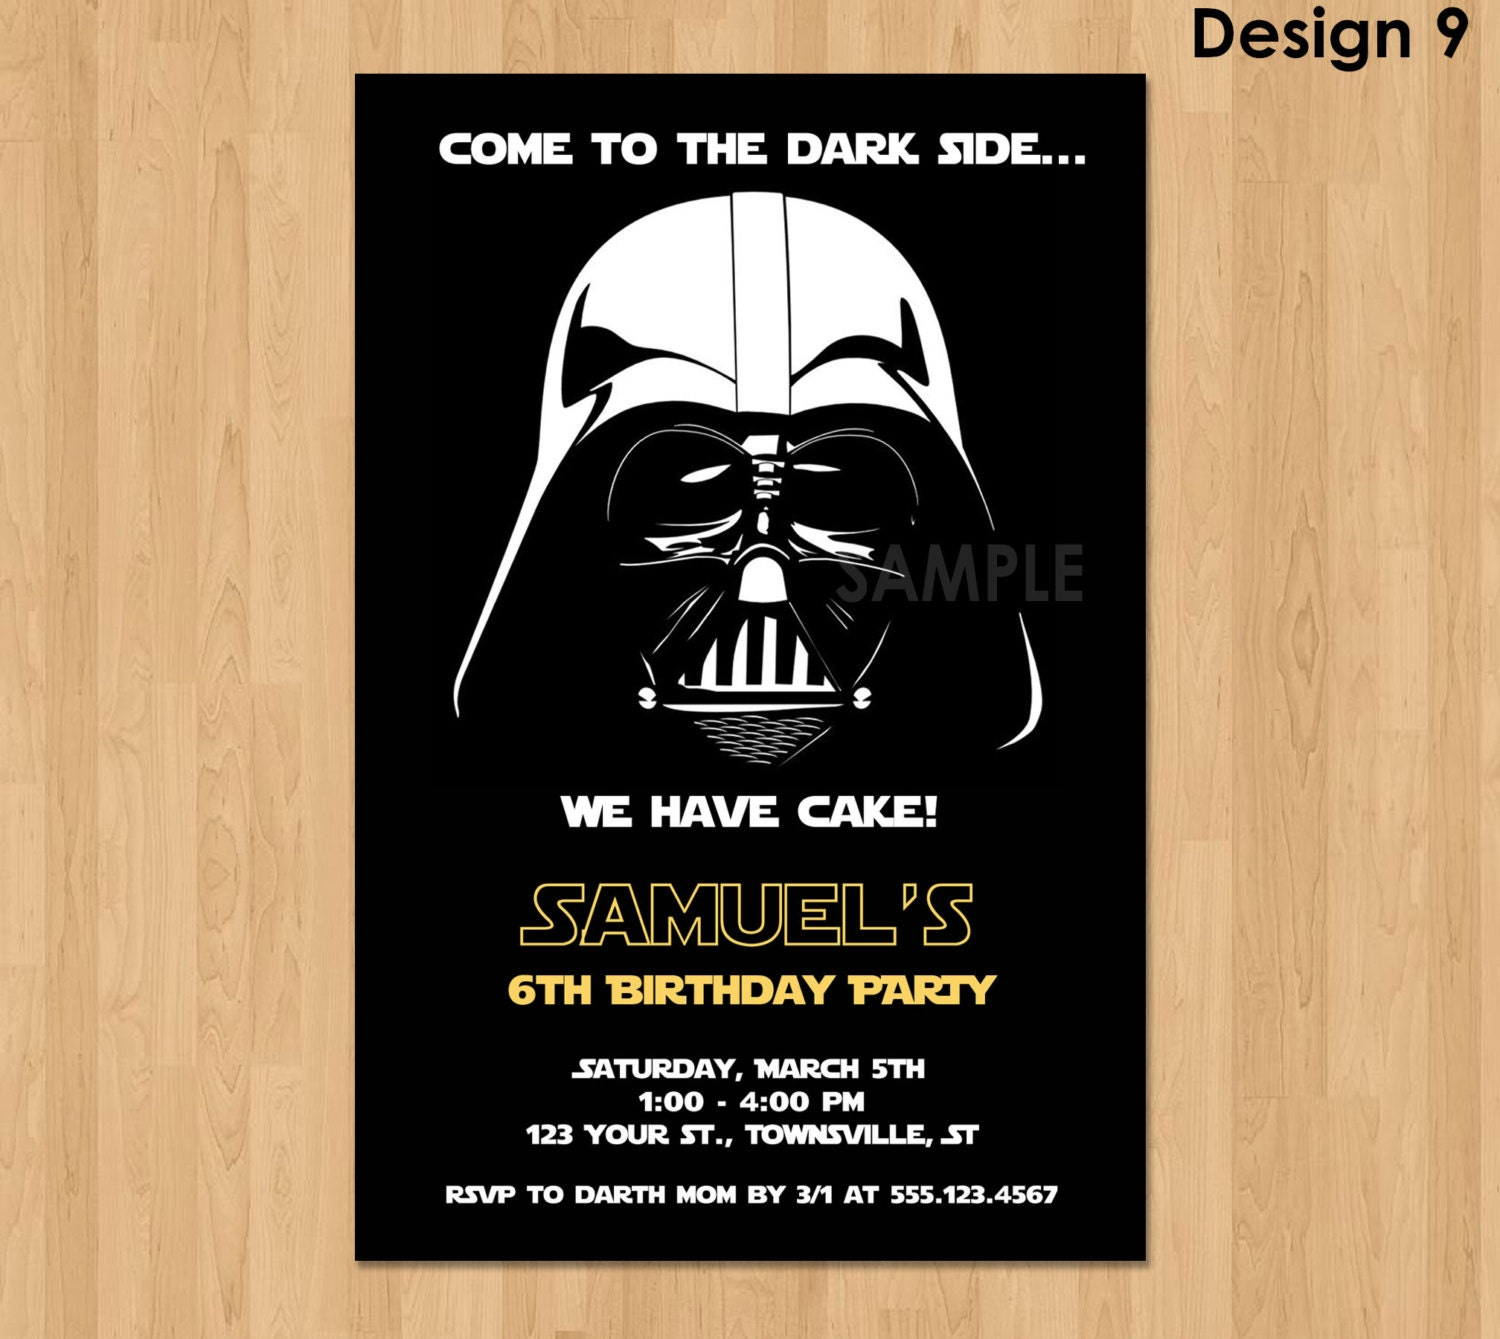 Darth Vader Invitation Star Wars Birthday Invitation Star